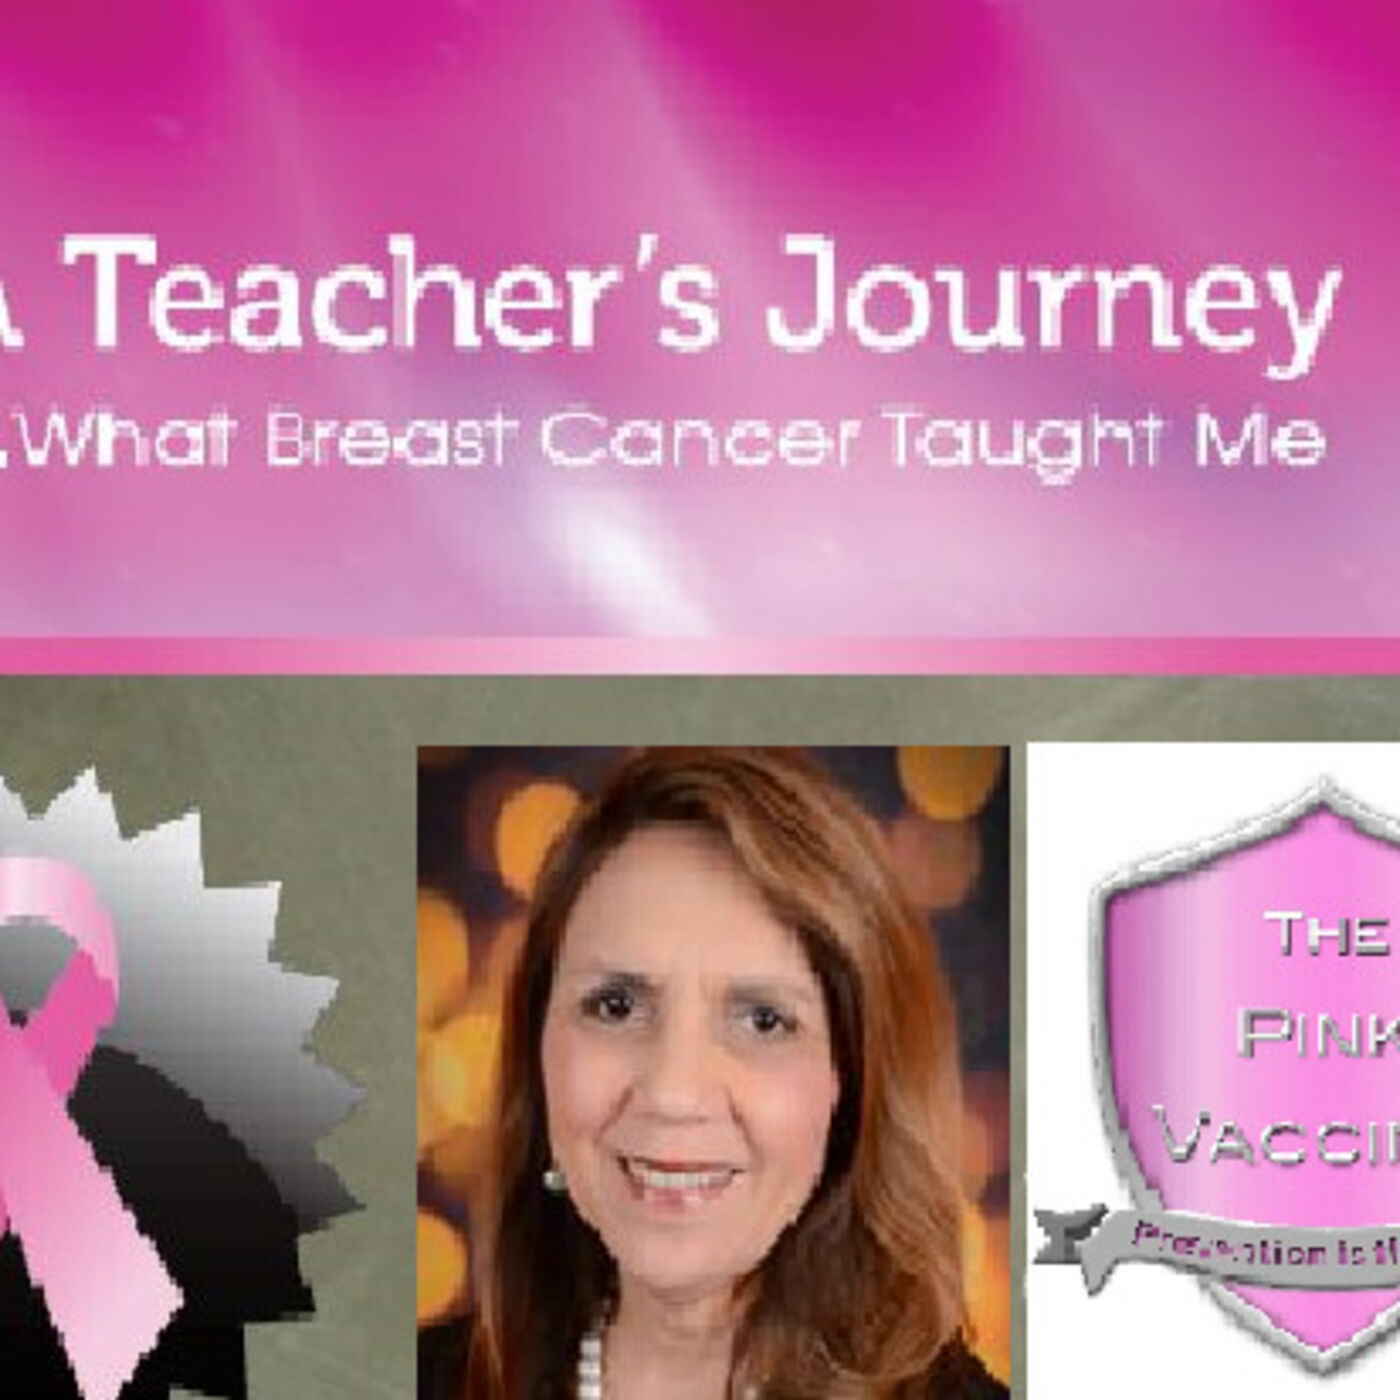 Chapter 3 of my book: A Teacher's Journey...What Breast Cancer Taught Me